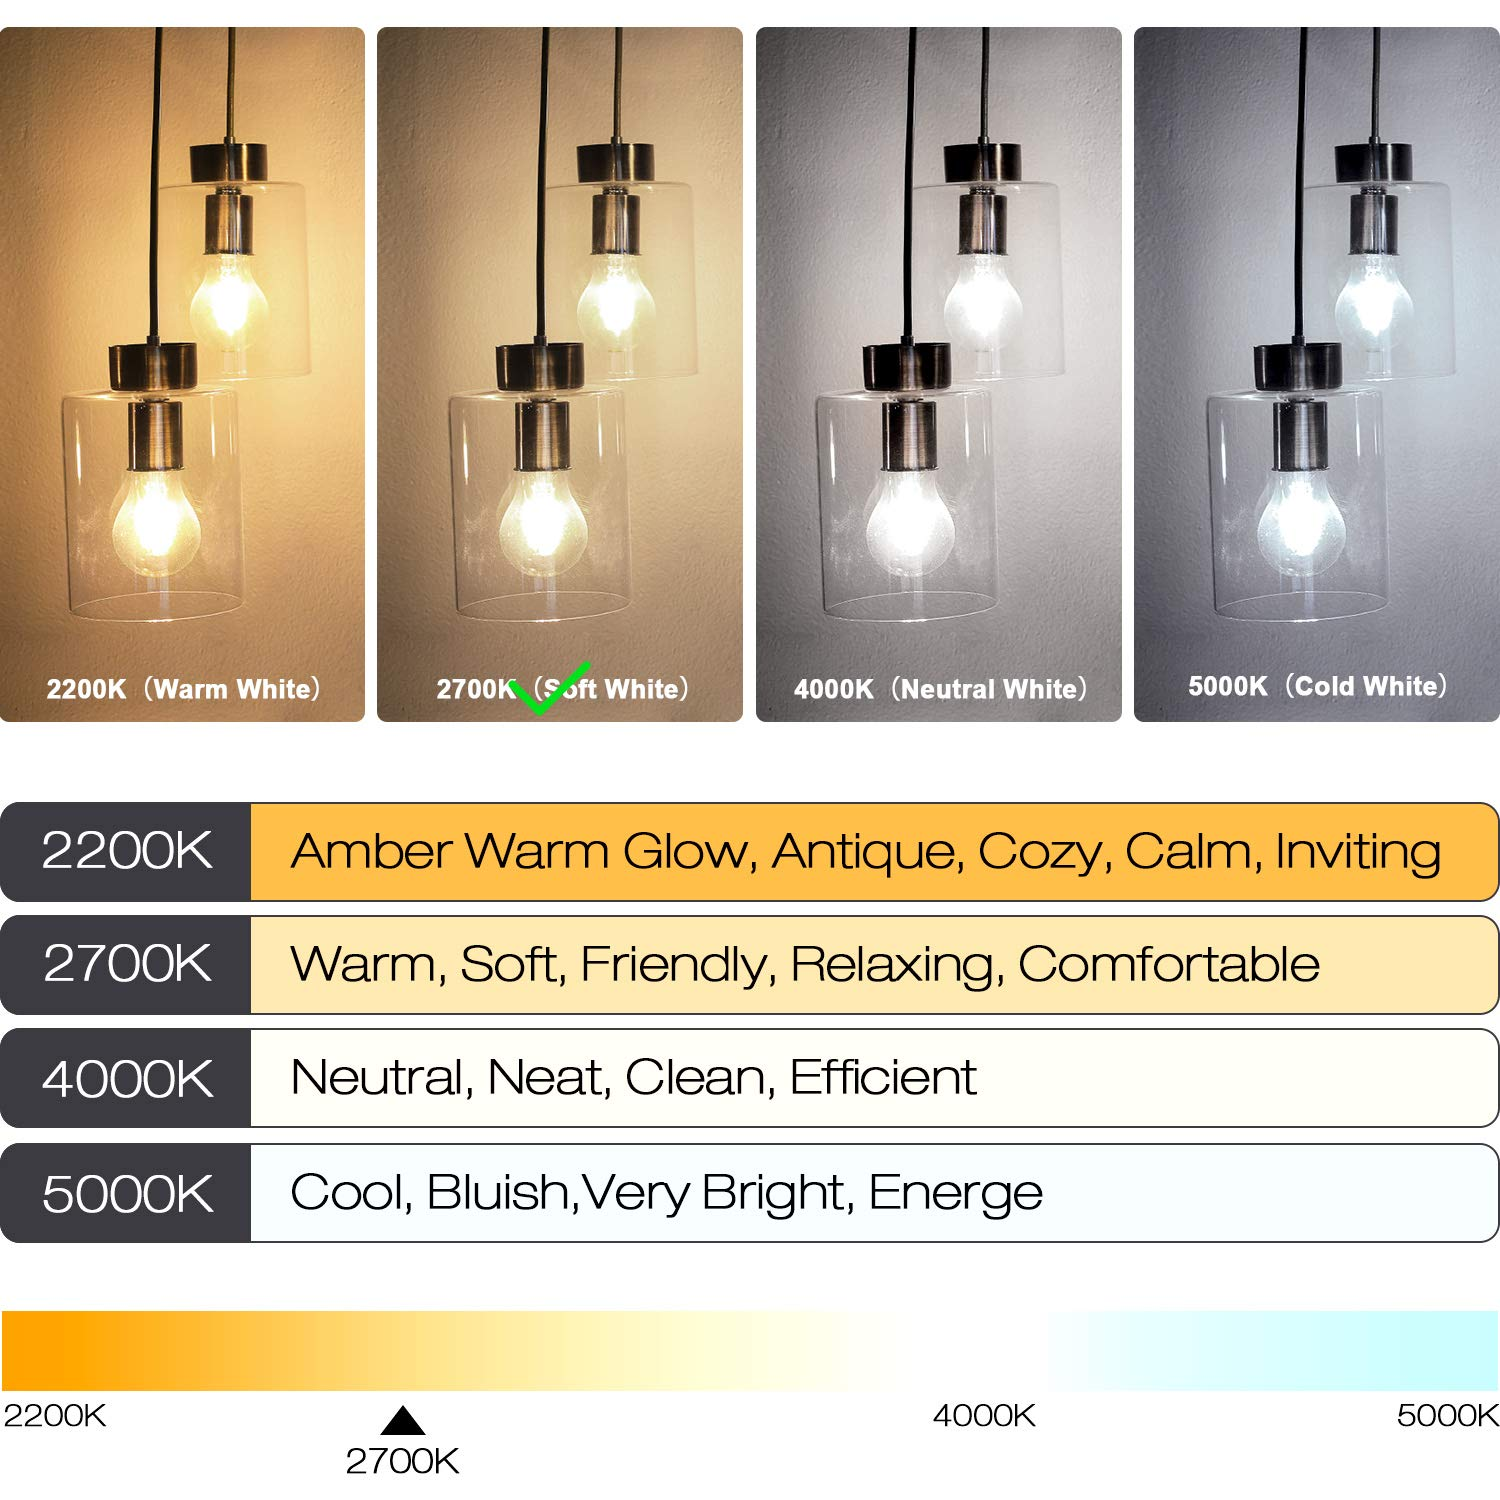 Vintage LED Edison Bulb Dimmable 6W A19 LED Light Bulbs 2700K Soft White 600LM Led Filament Bulb 60W Incandescent Equivalent E26 Medium Base Decorative Clear Glass for Home, Restaurant, Cafe, 6 Pack by Boncoo (Image #9)